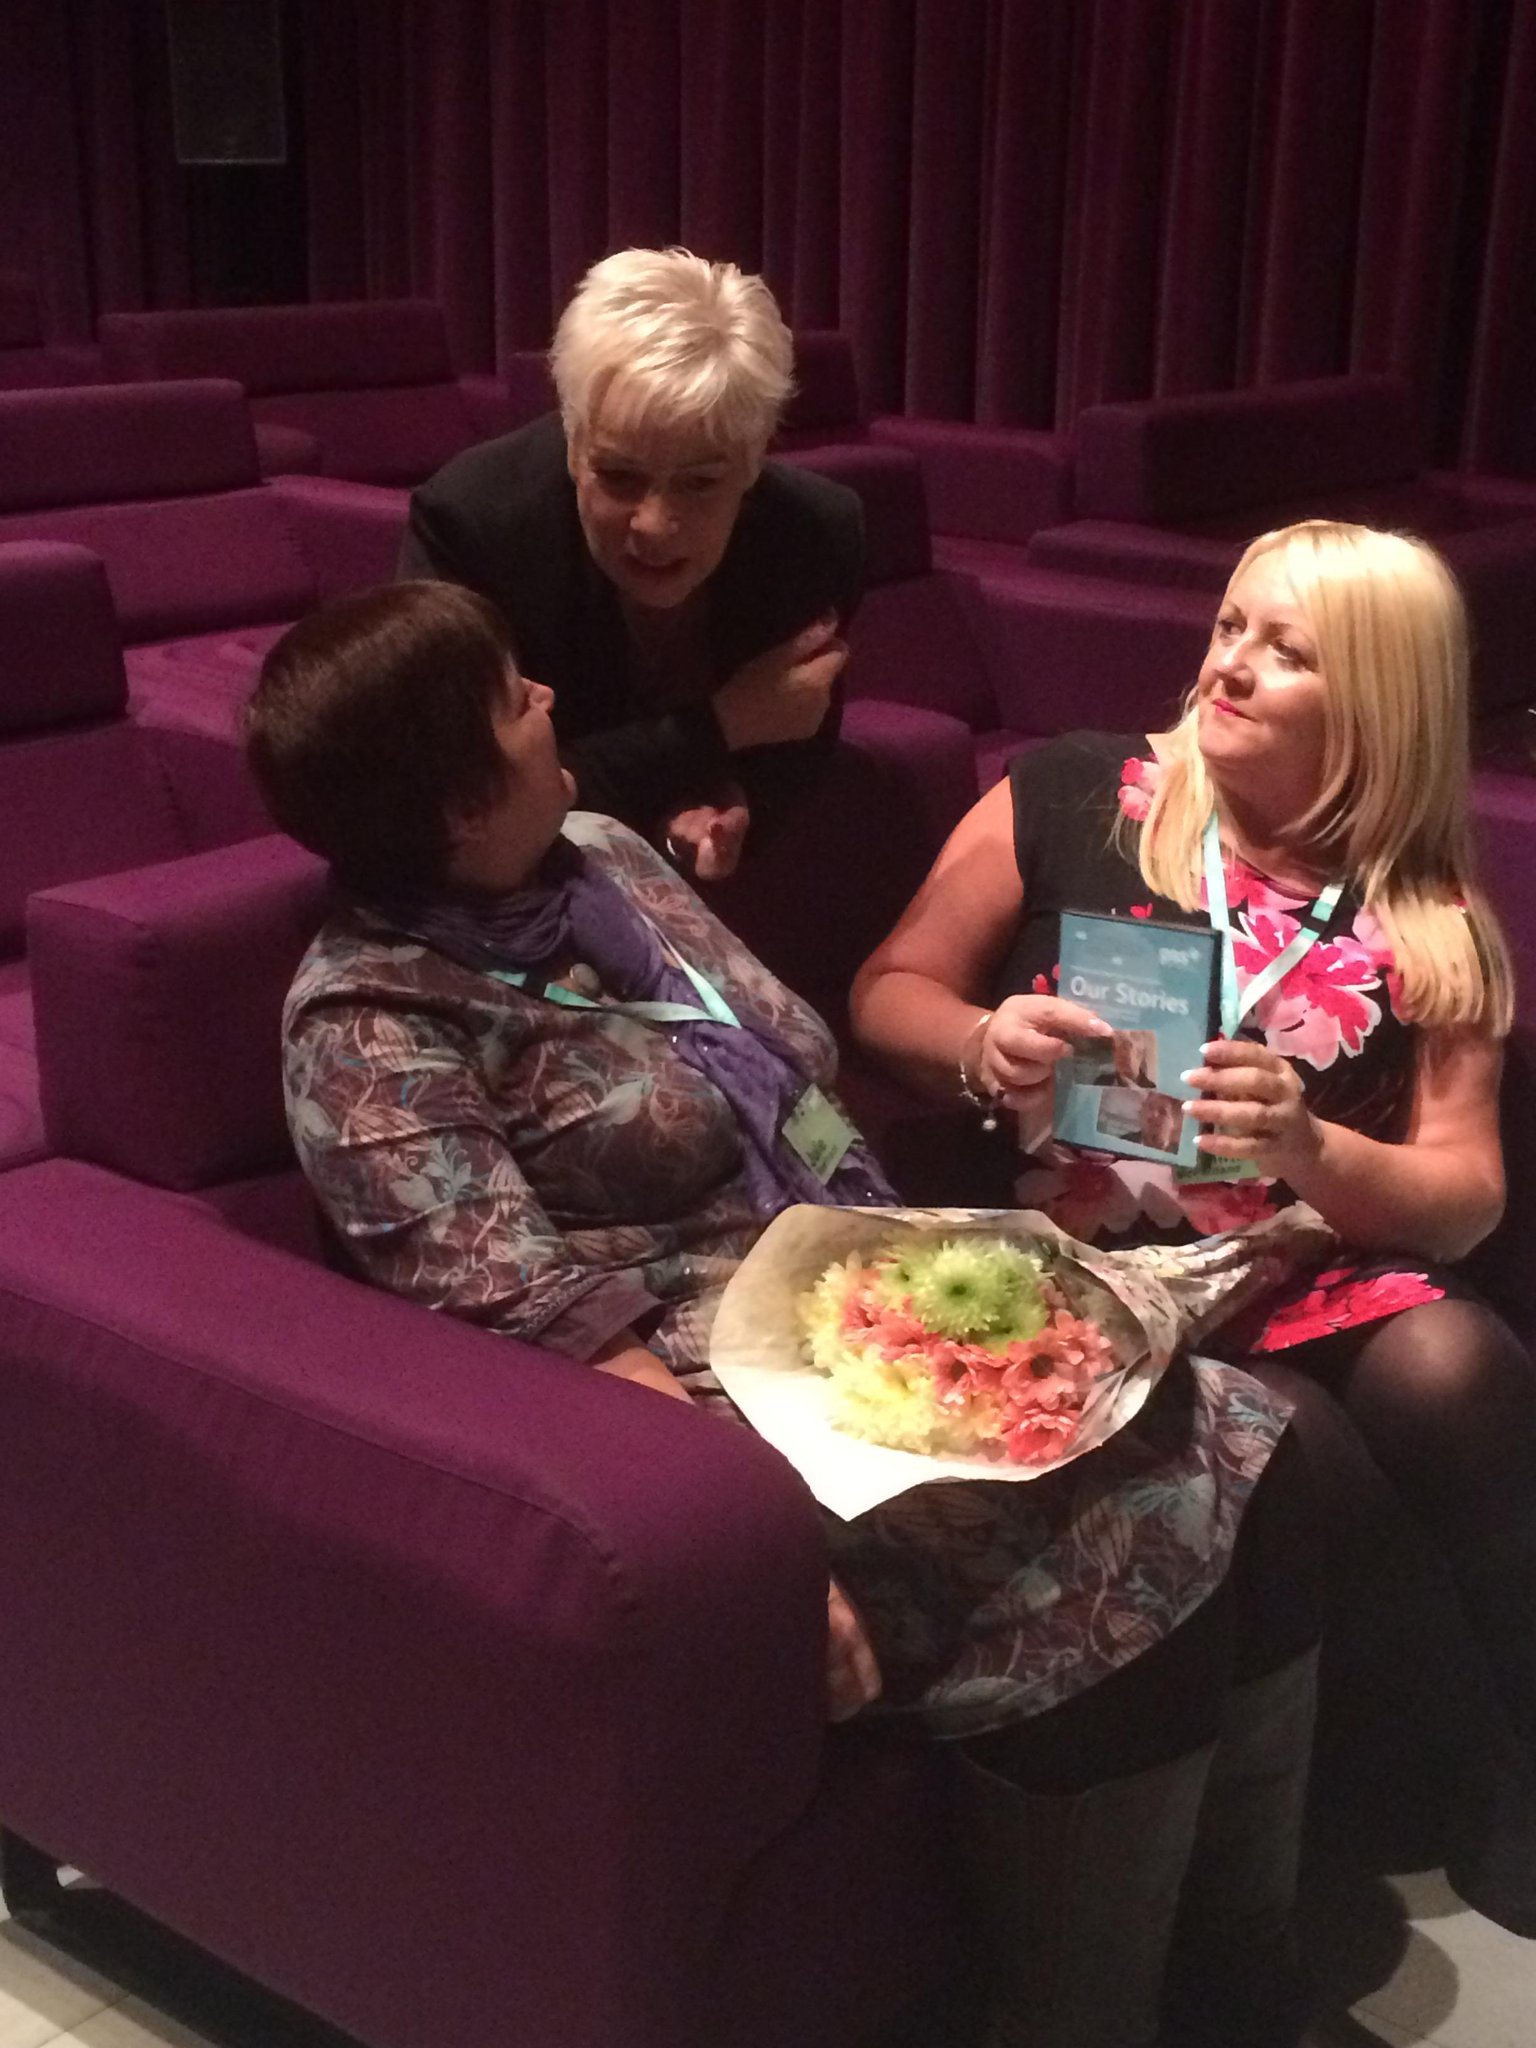 RT @paulinemc2: Deep in conversation @realdenisewelch yesterday and what a fab productive connected day xxx http://t.co/cPL578FkW1